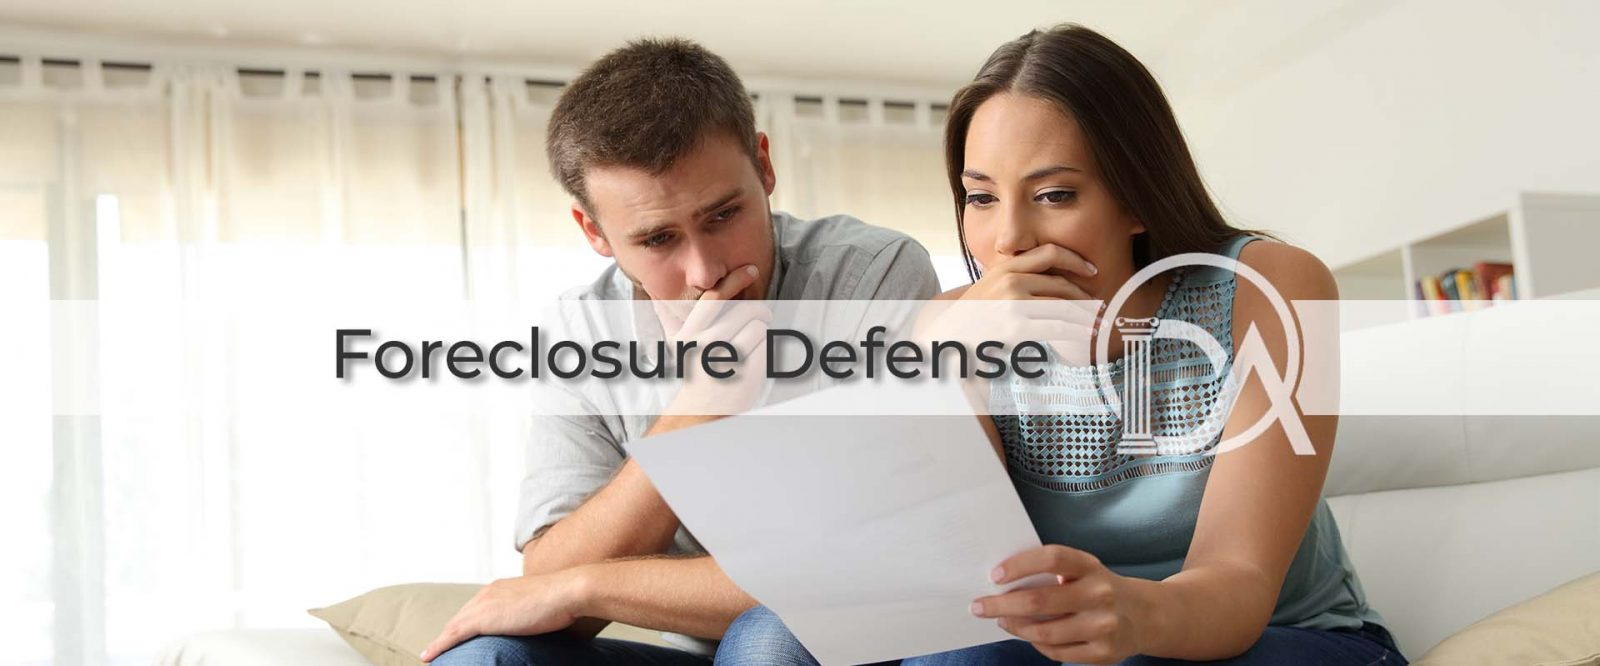 Foreclosure Defense Dina Arvanitakis